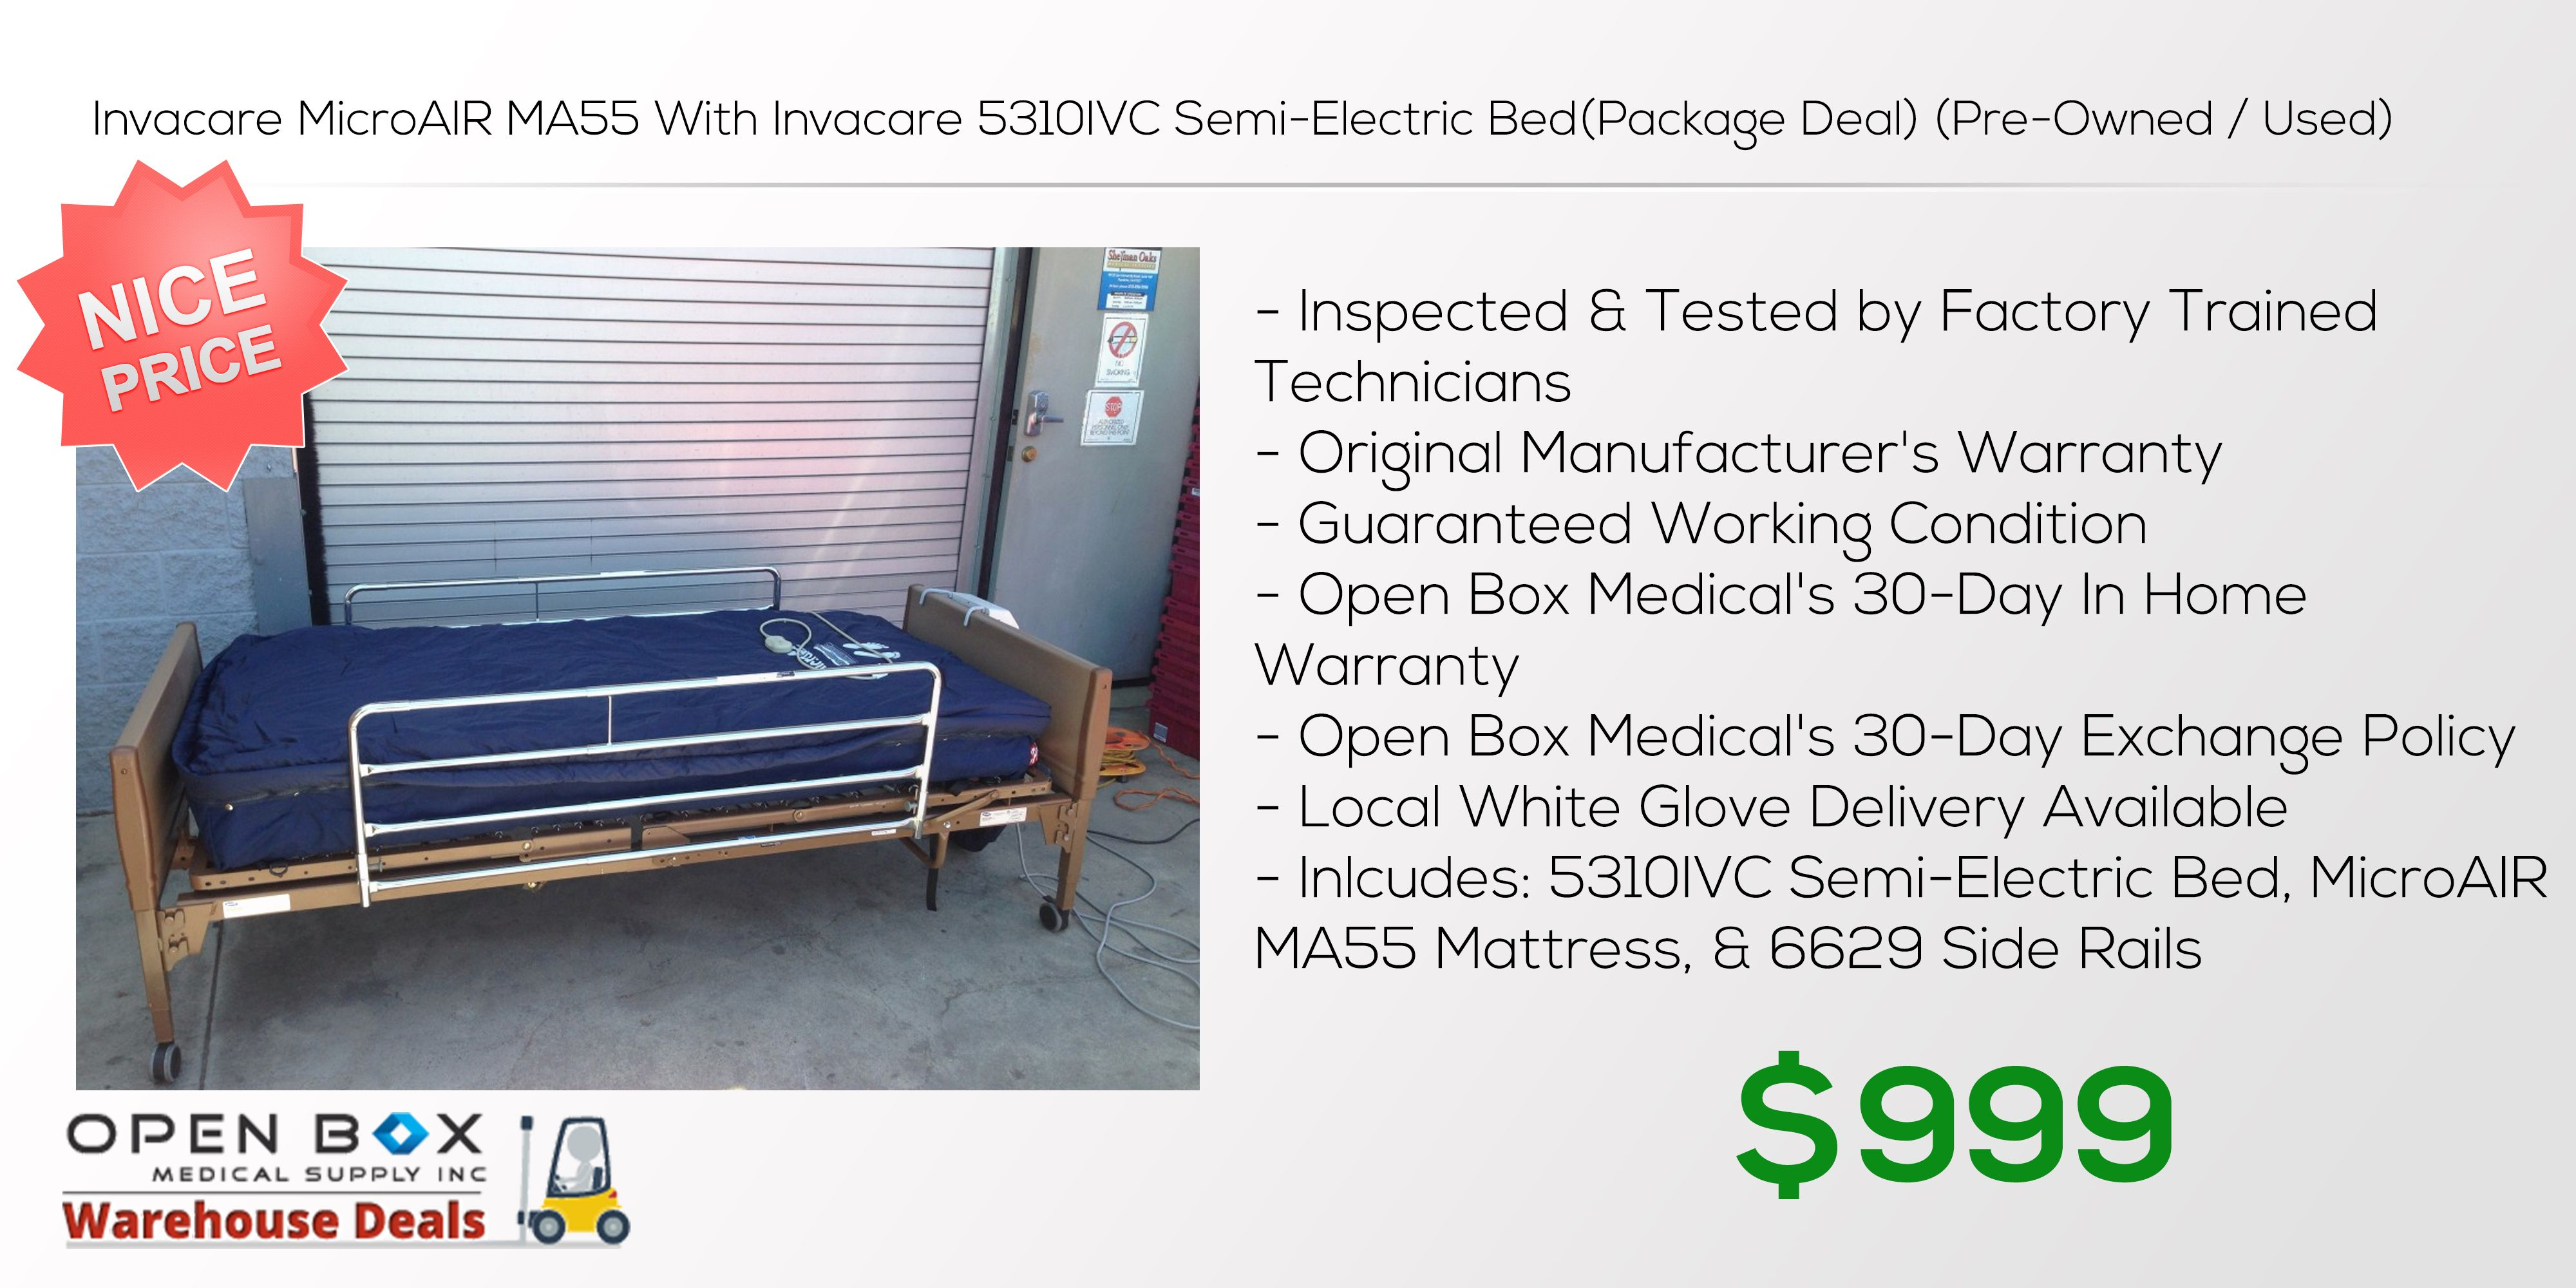 Invacare MicroAIR MA55 Electricity, Bed sores, Home warranty